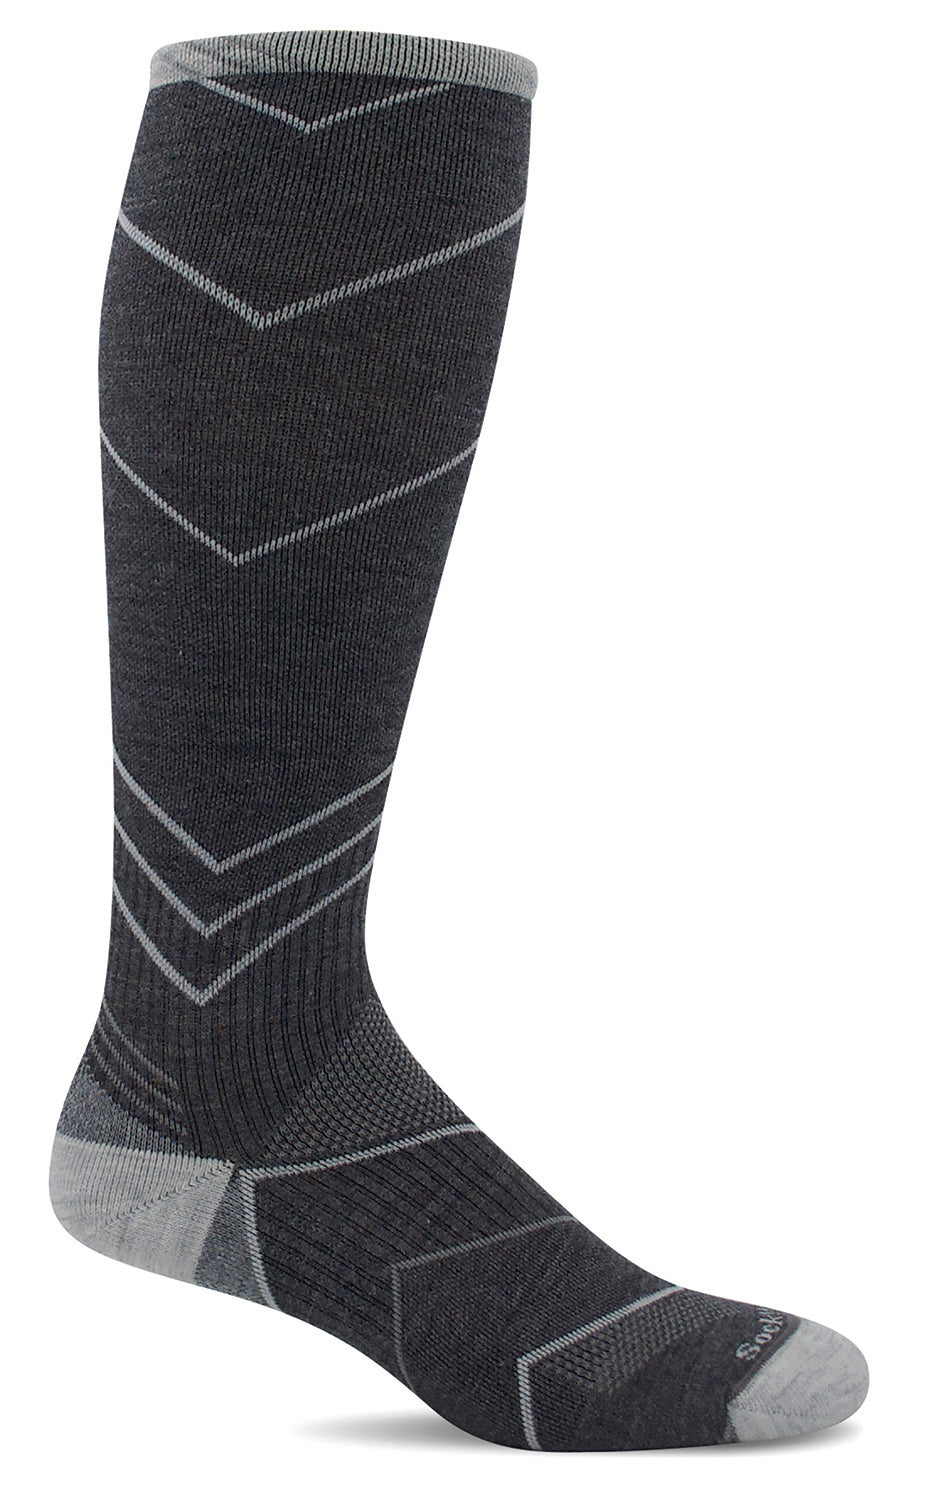 Incline OTC Knee-High - Charcoal Moderate Compression (15-20mmHg)